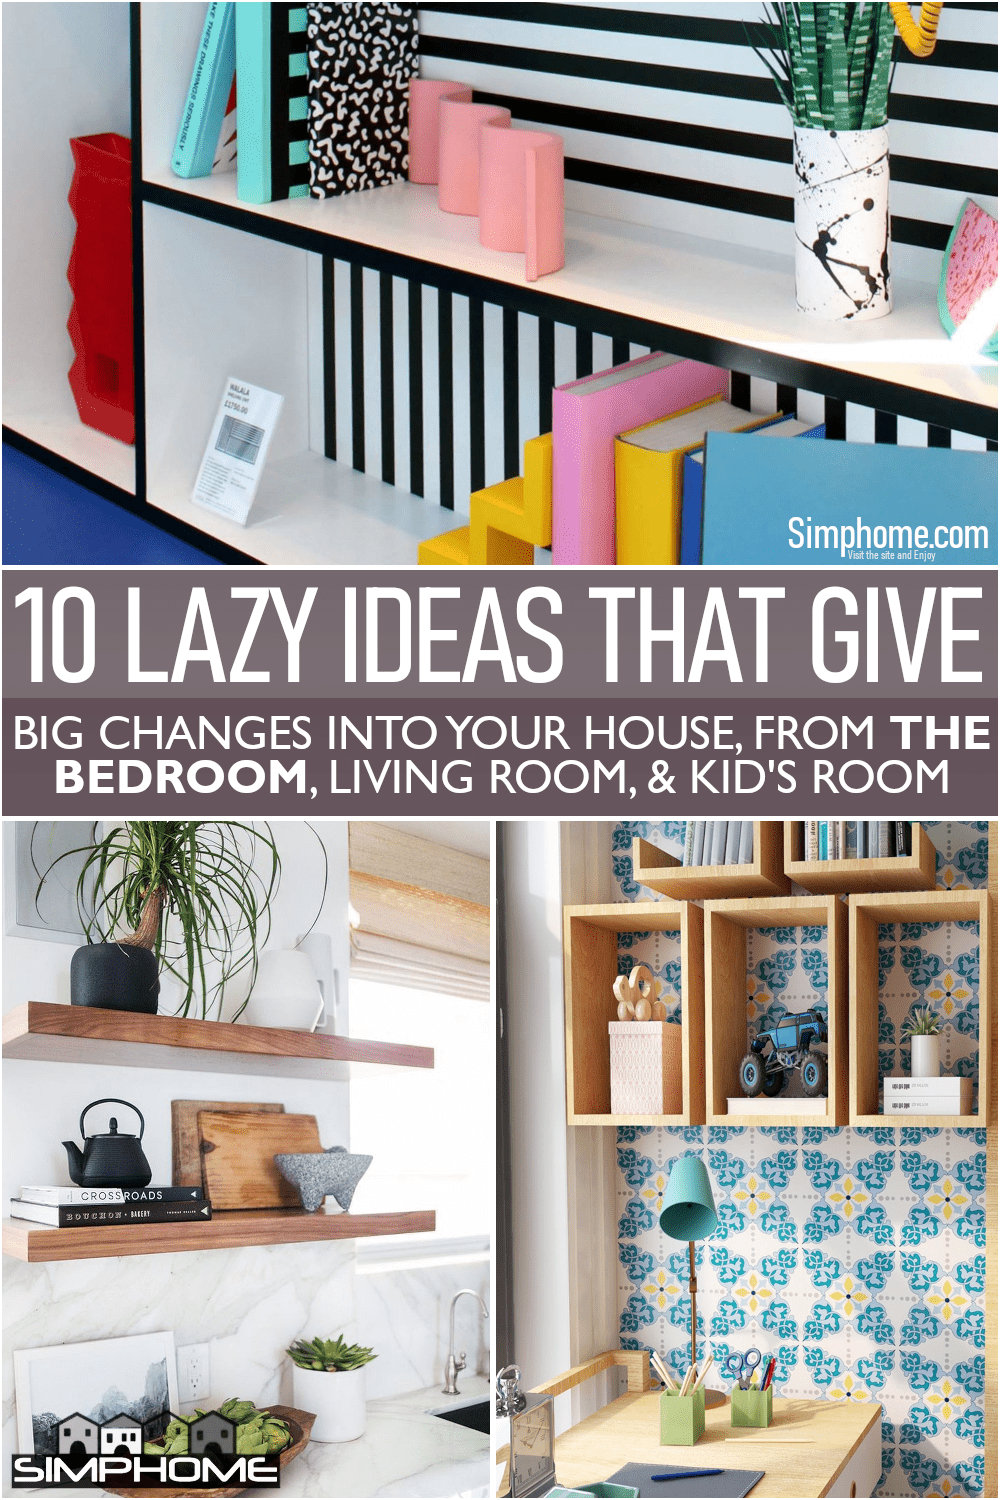 10 Lazy Ideas to Make Big Change in Your House via Simphome.comFeatured